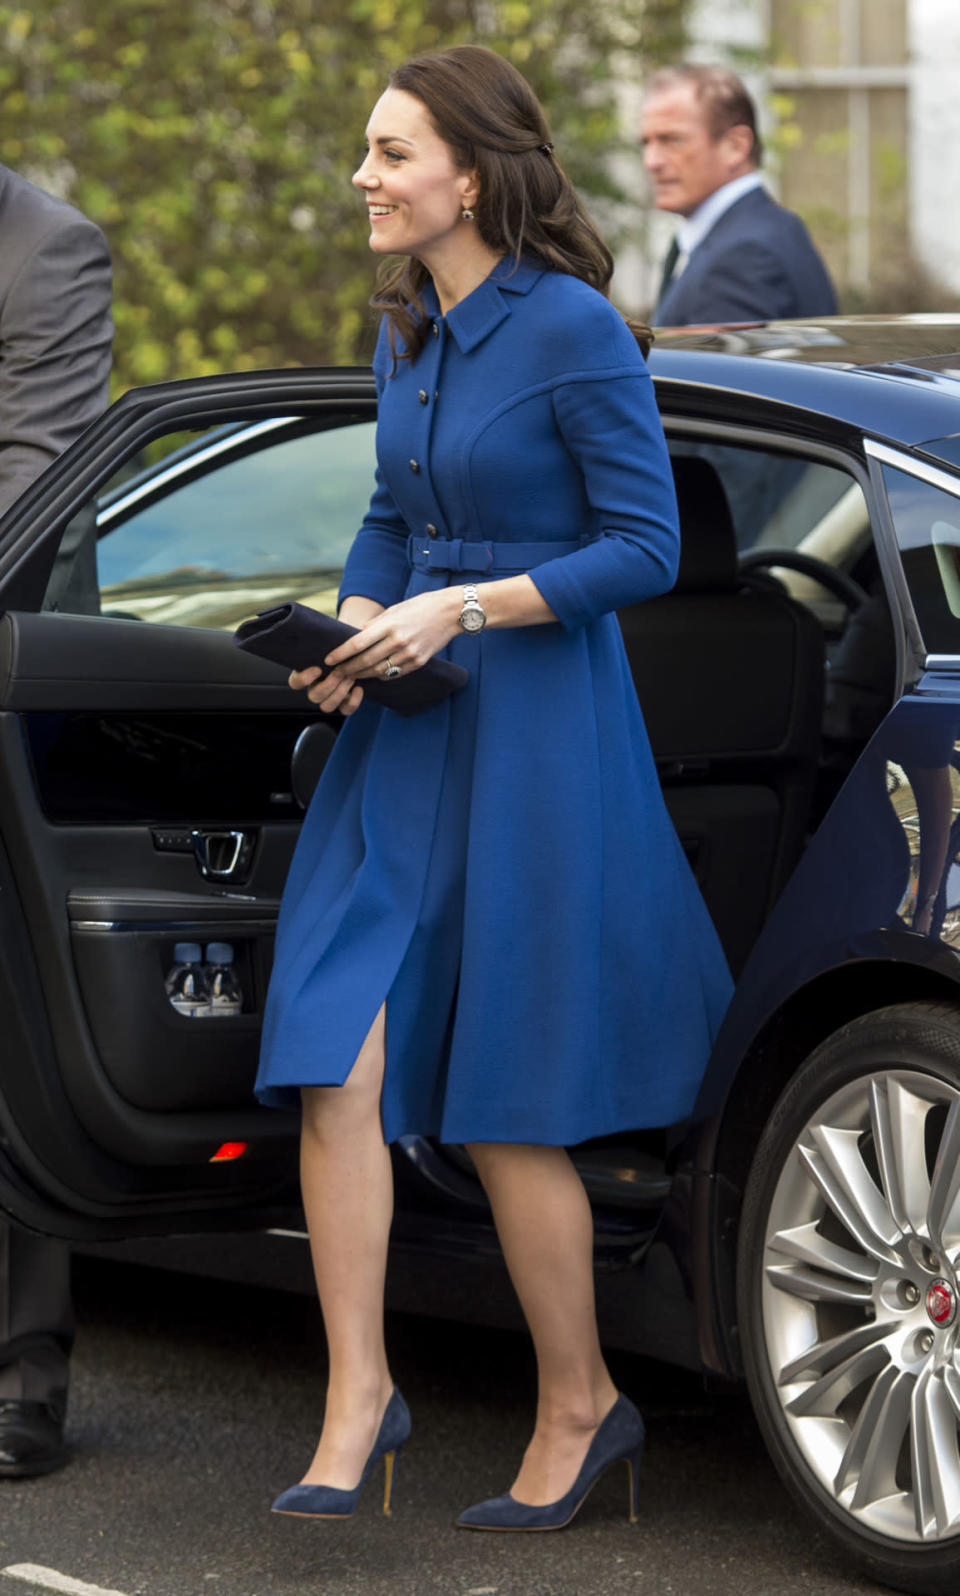 """<p>For her <a rel=""""nofollow"""" href=""""https://uk.style.yahoo.com/duchess-of-cambridge-brings-back-90s-hair-trend-on-first-work-outing-of-2017-120744931.html"""" data-ylk=""""slk:first official appearance of the year;outcm:mb_qualified_link;_E:mb_qualified_link;ct:story;"""" class=""""link rapid-noclick-resp yahoo-link"""">first official appearance of the year</a>, the Duchess donned a royal blue coat by London luxe label Eponine. Kate finished the look with her trusty Rupert Sanderson blue pumps and twisted back locks of her hair with the ultimate 90s hair accessory: the butterfly clip. </p><p><i>[Photo: Getty]</i></p>"""